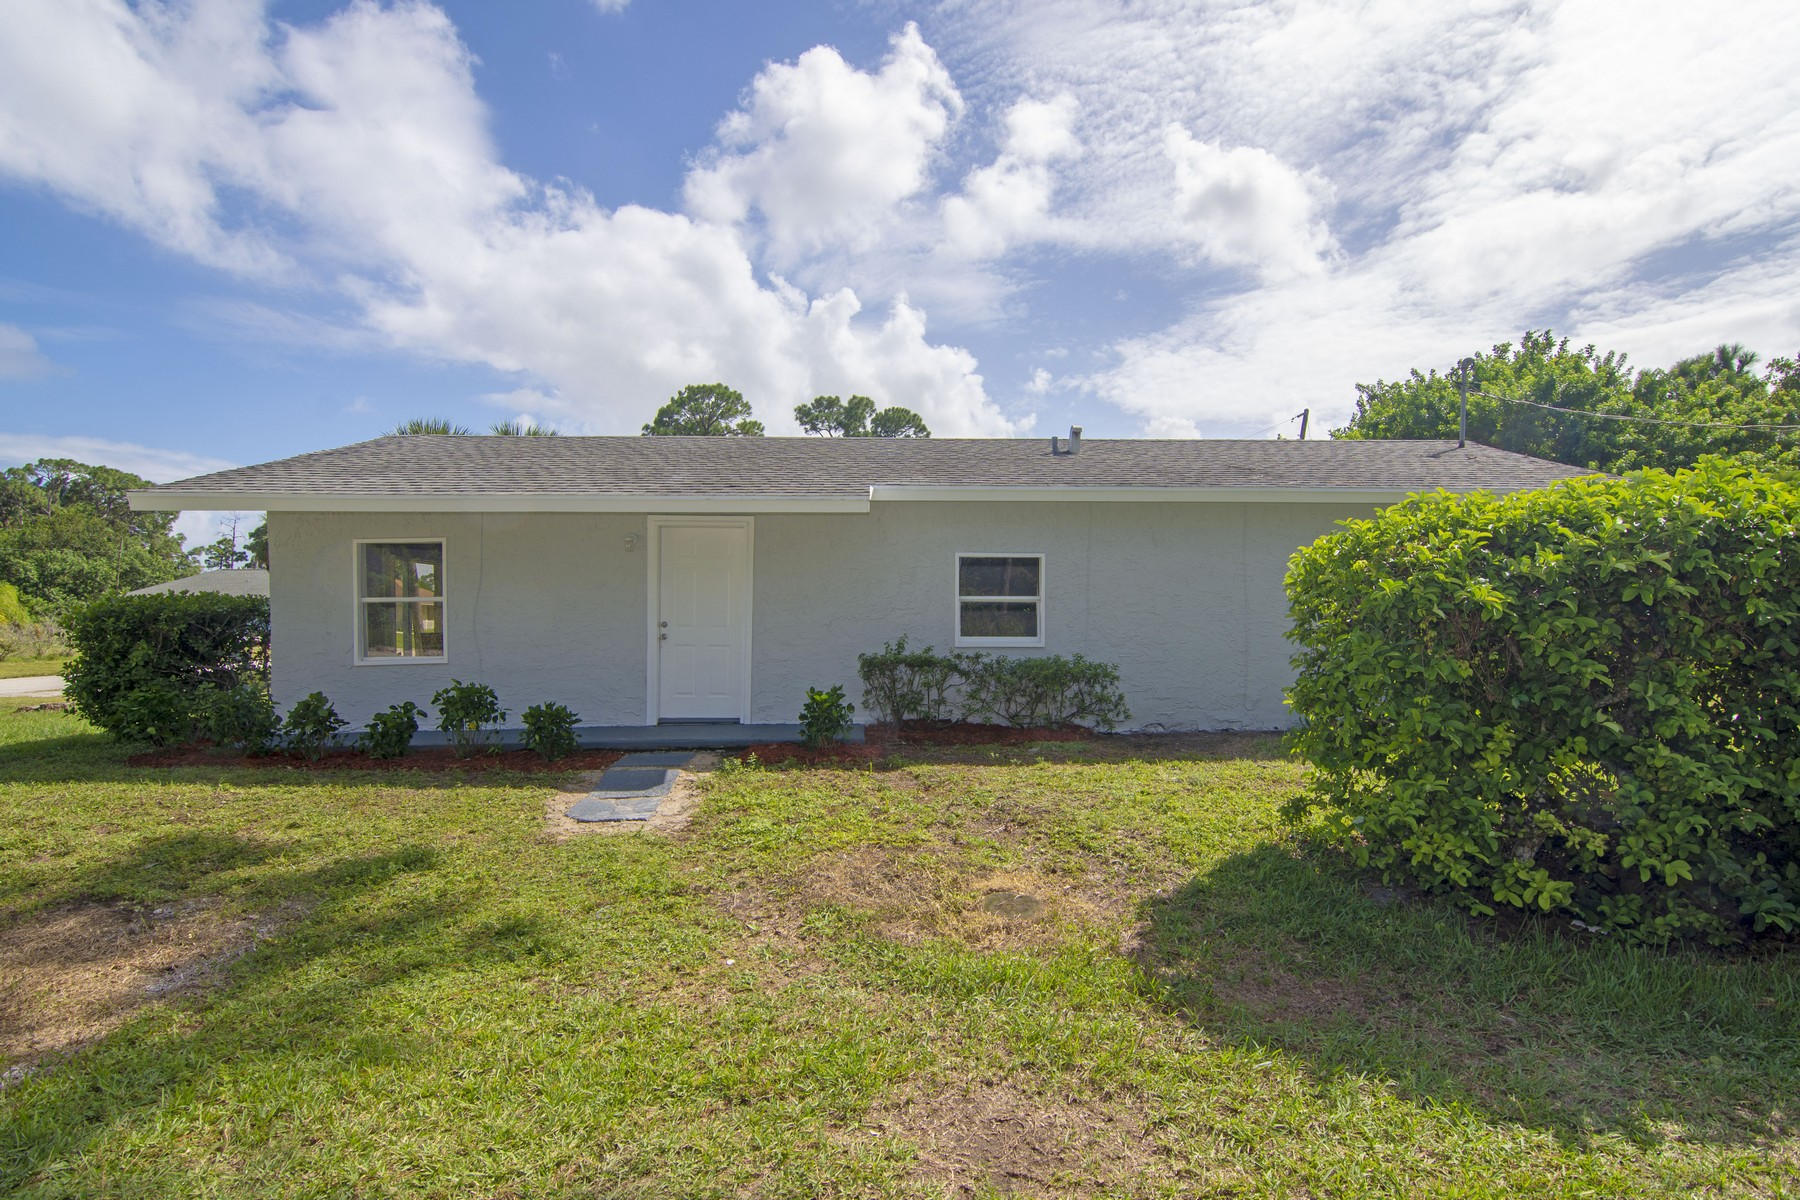 Single Family Homes for Sale at Completely Remodeled Home! 1145 7th St SW Vero Beach, Florida 32962 United States